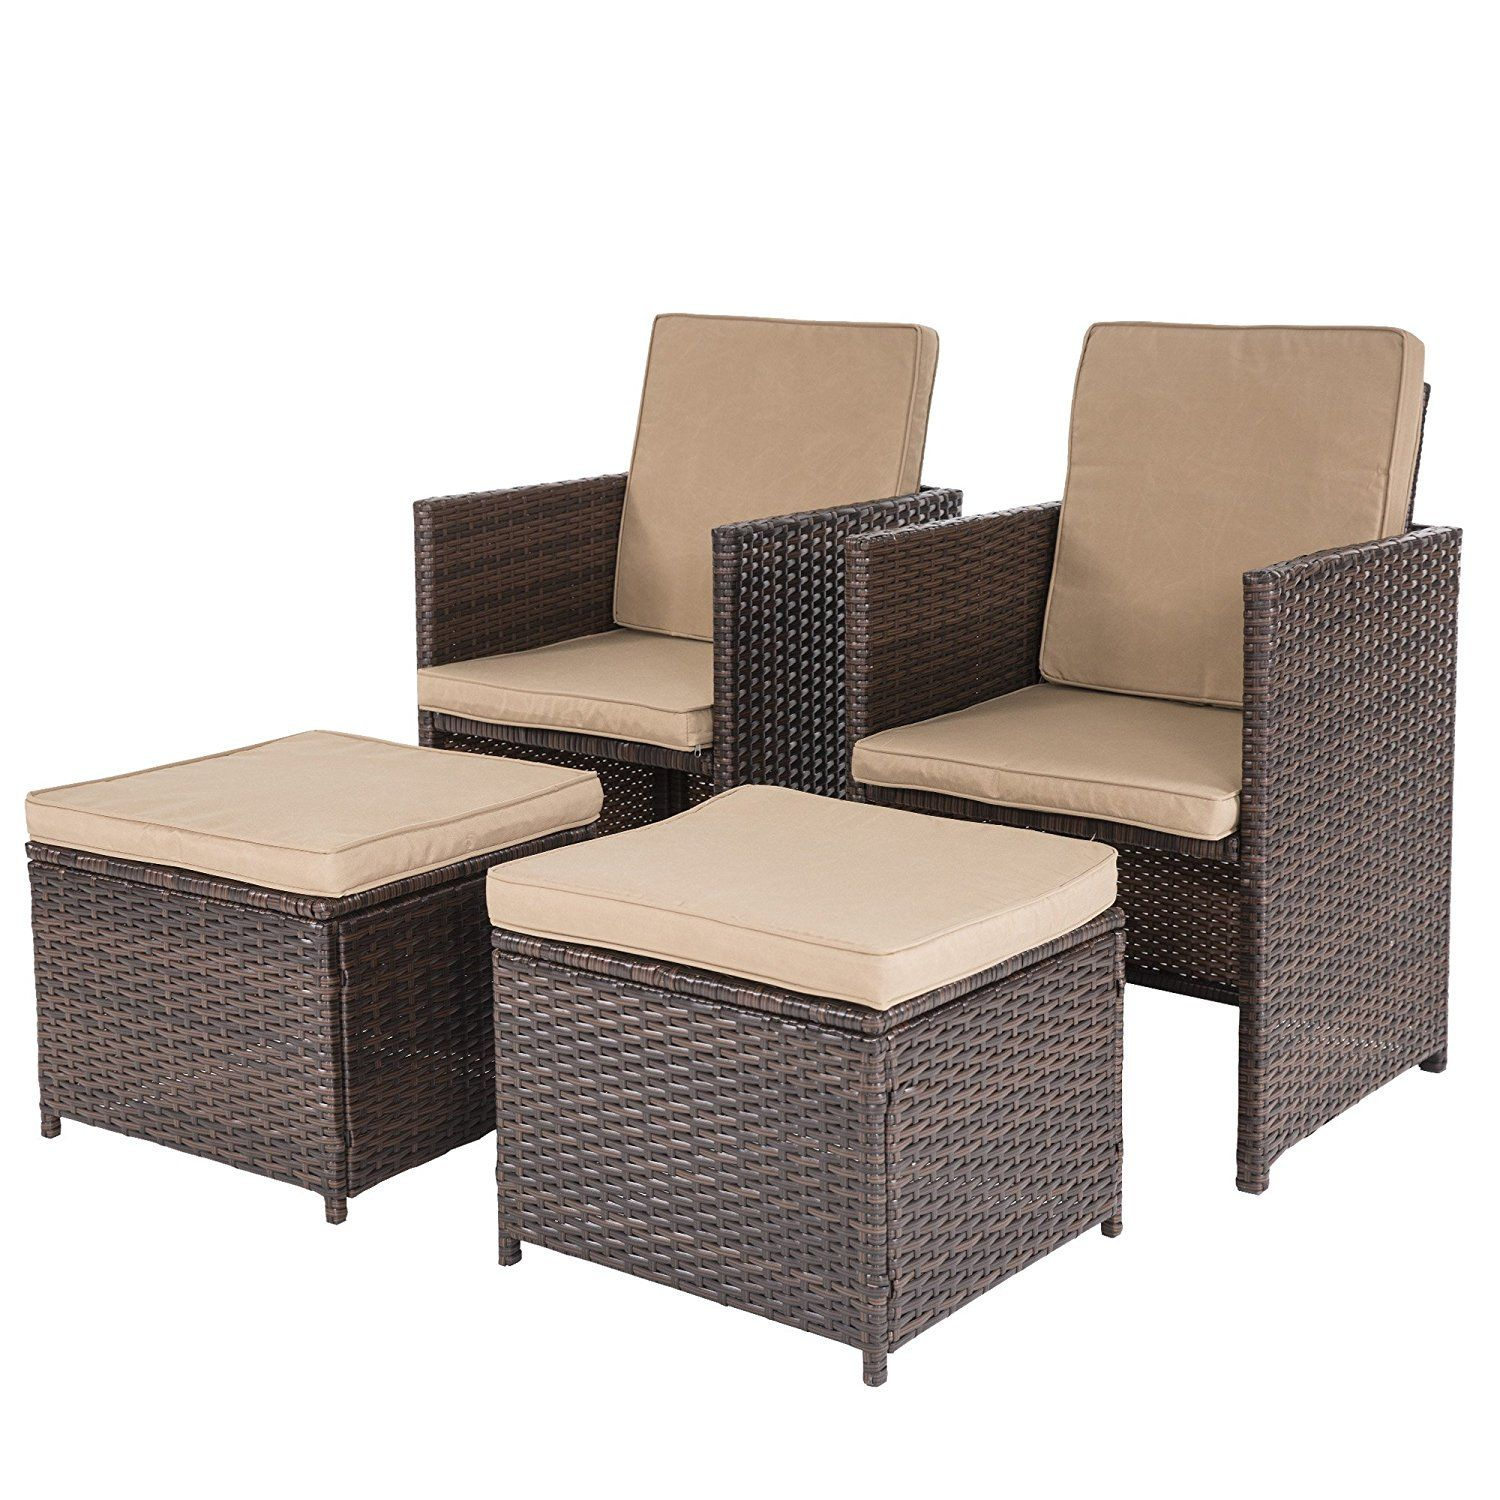 wicker patio dining sets beachfront decor patio dining sets rh pinterest com